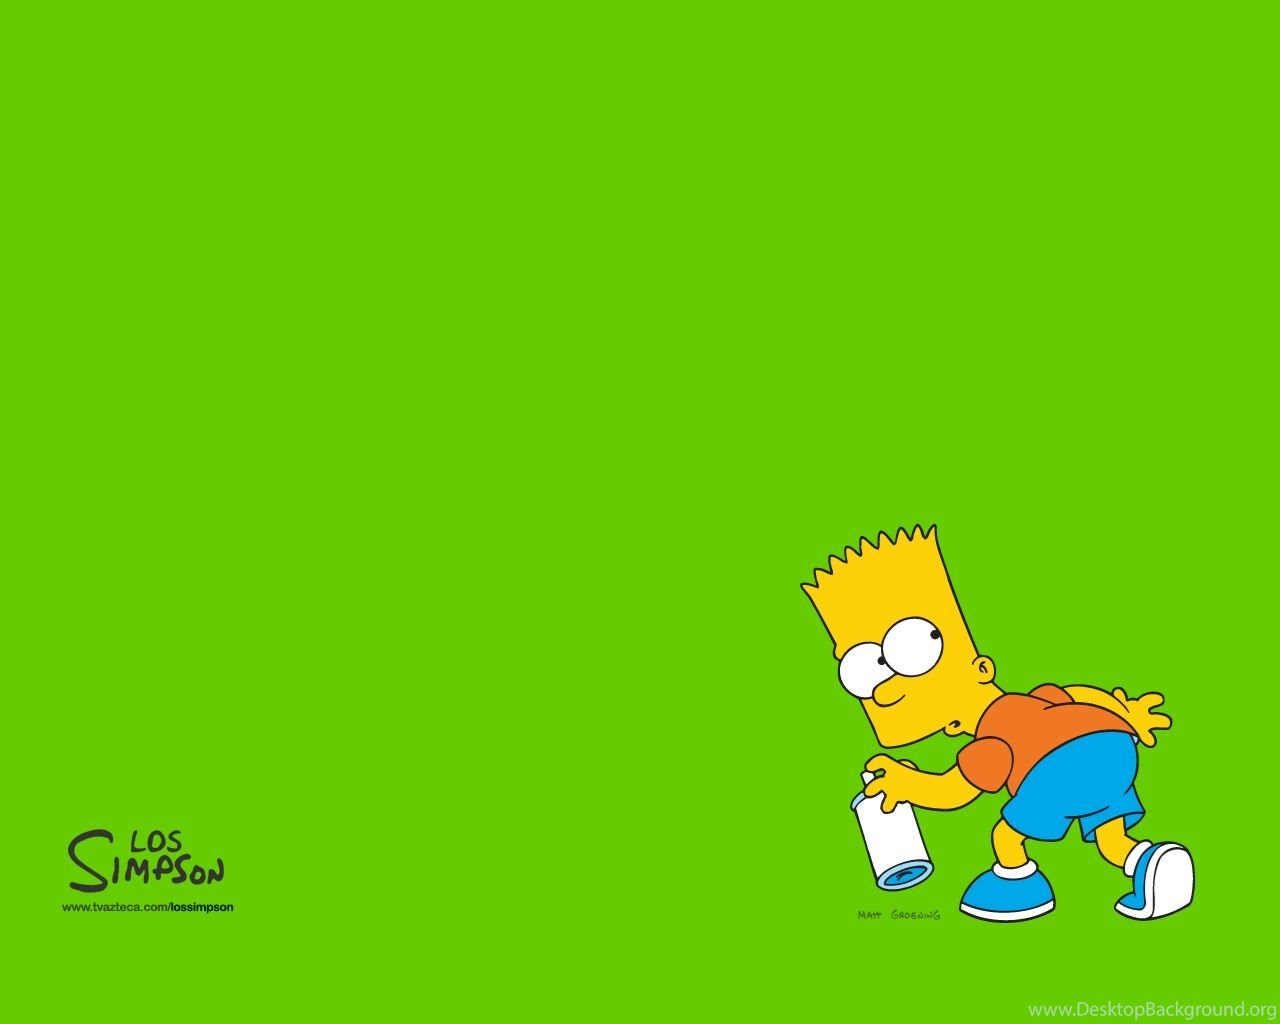 Bart Simpson Wallpapers Hd Free Download Desktop Background